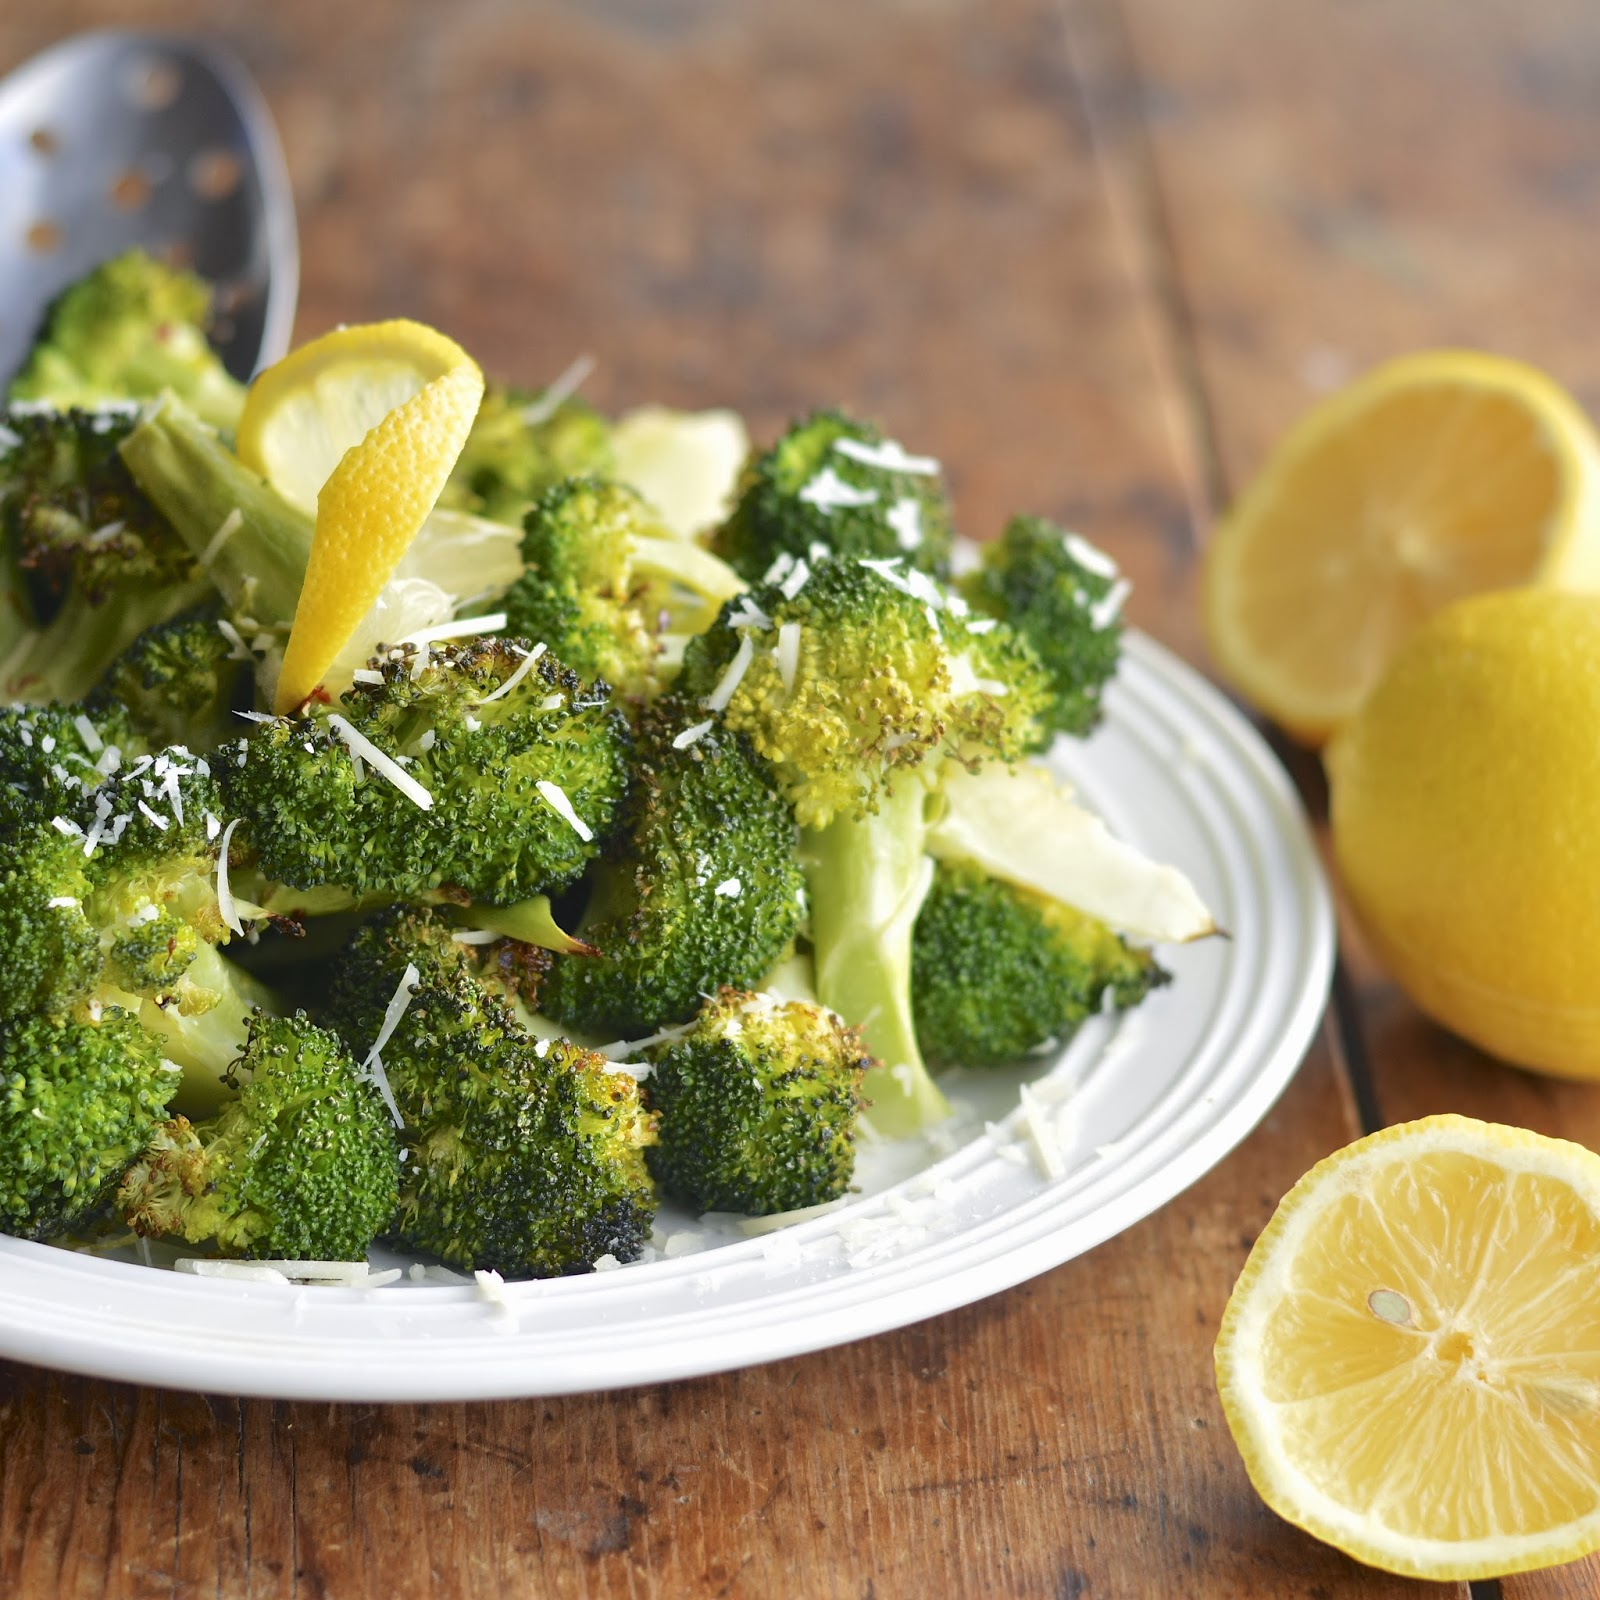 Roasted Broccoli with Garlic, Parmesan and Lemon | Virtually Homemade ...